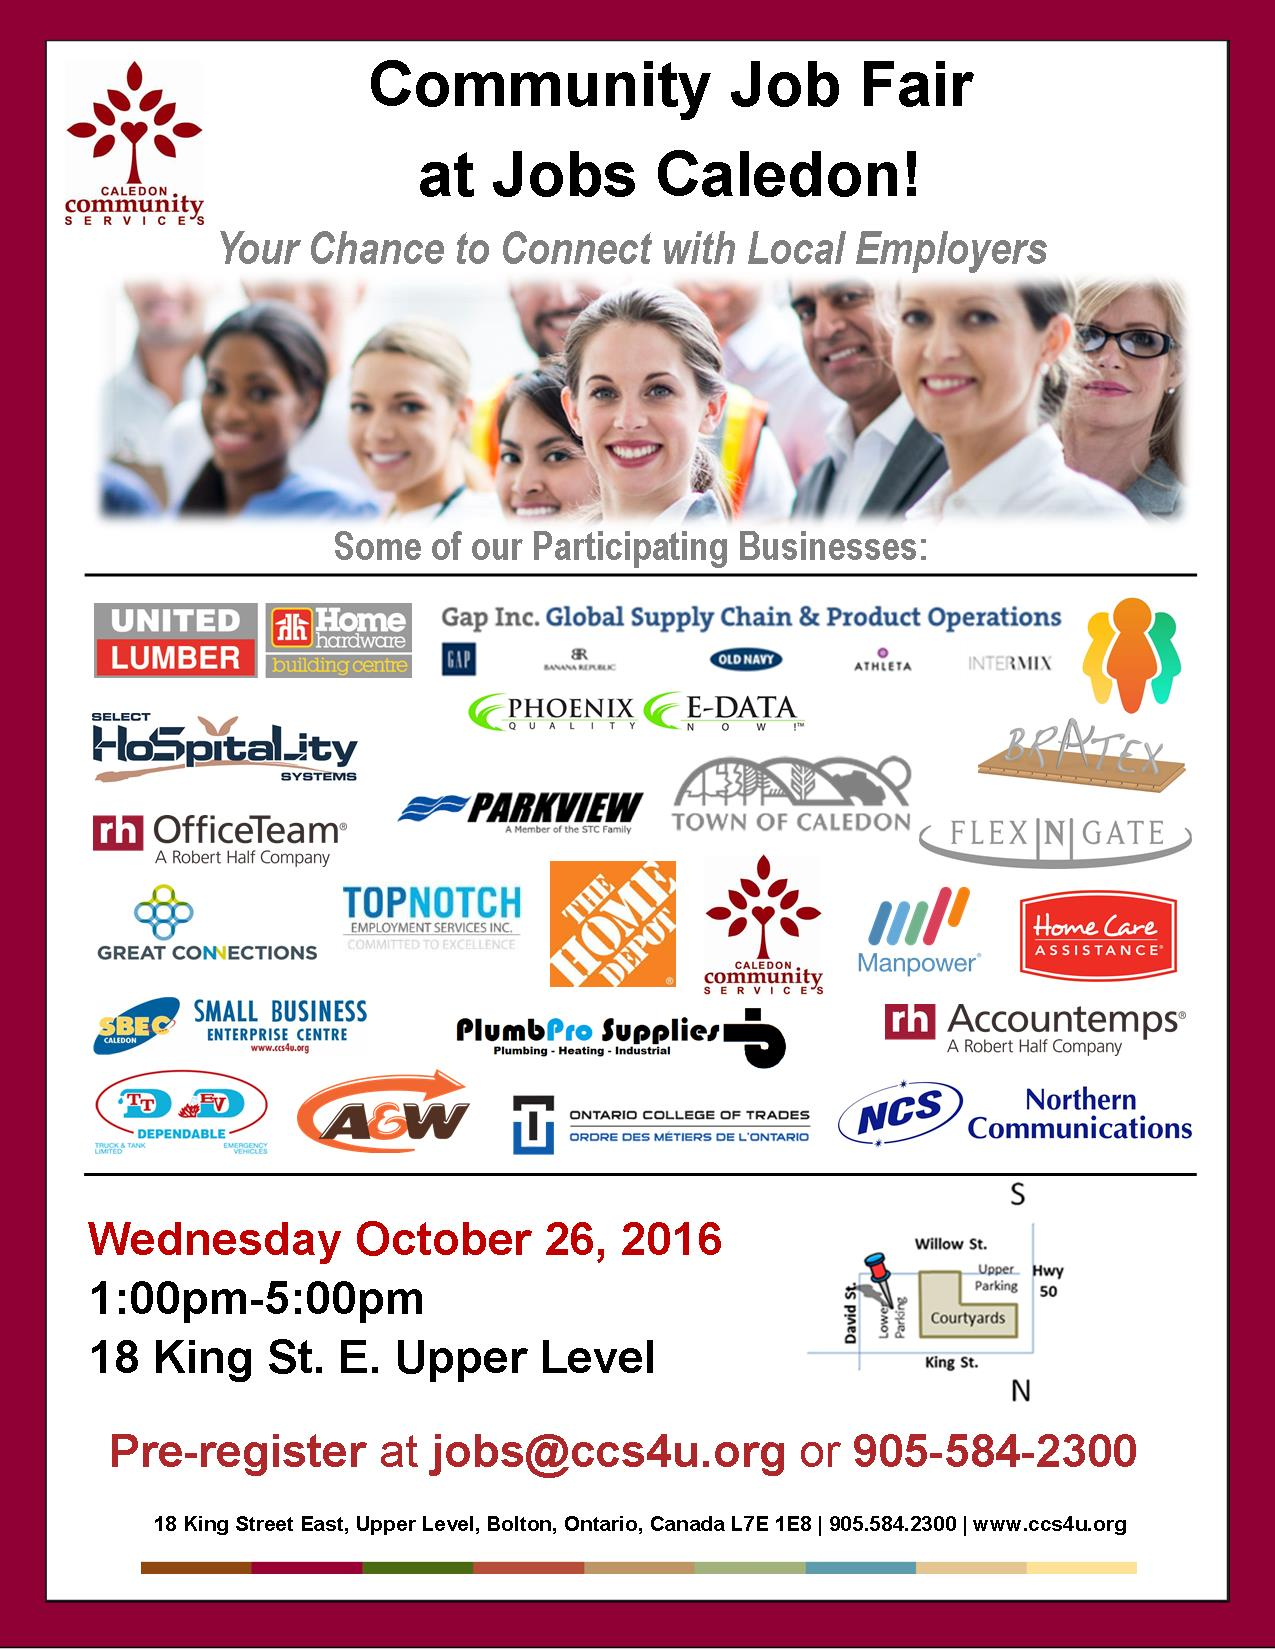 Jobs Caledon Multi-Employer Job Fair